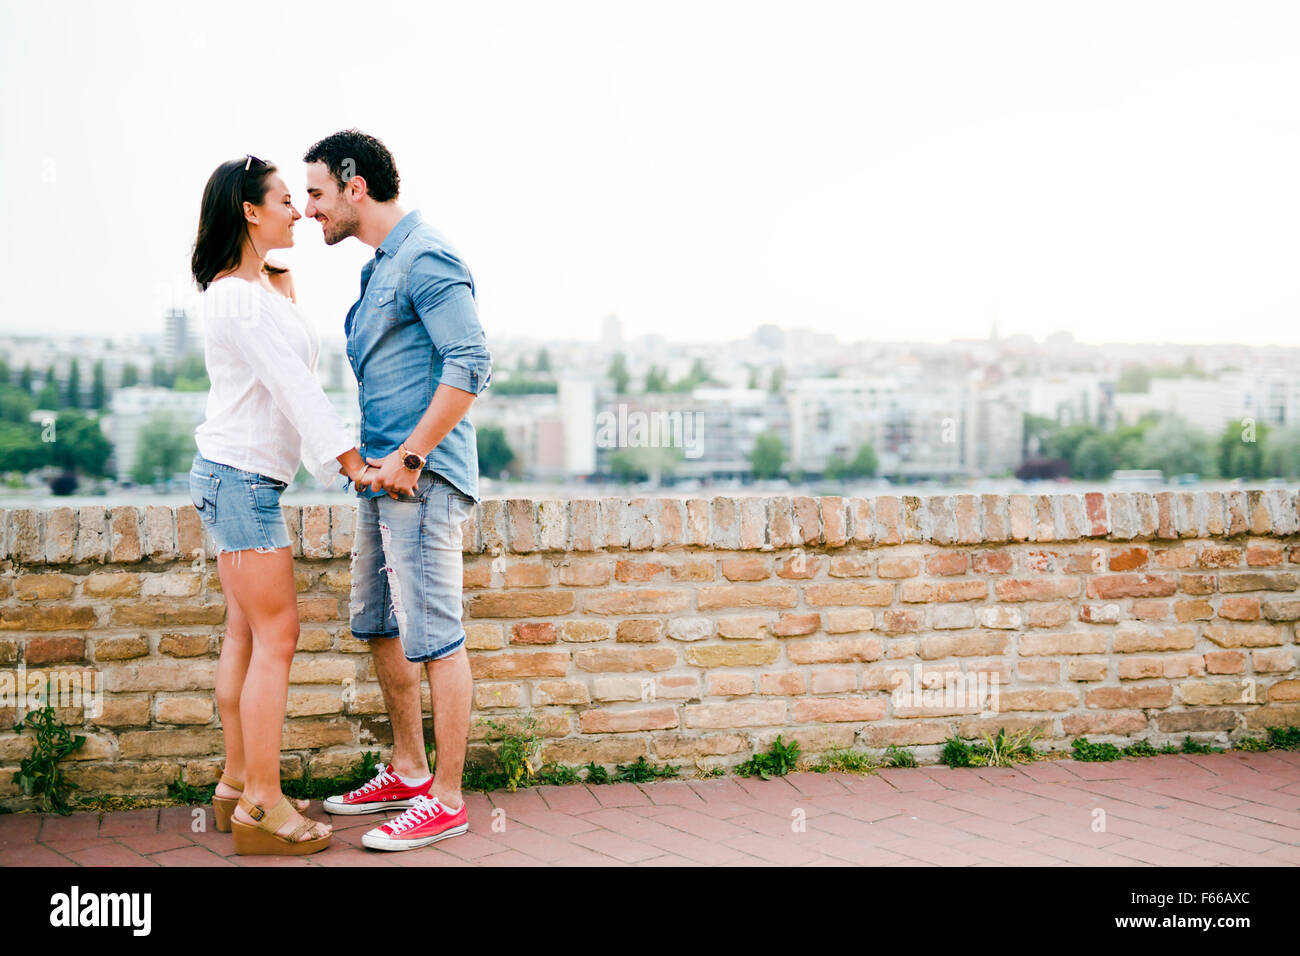 Young and beautiful couple in love being close to each other outdoors and about to kiss - Stock Image